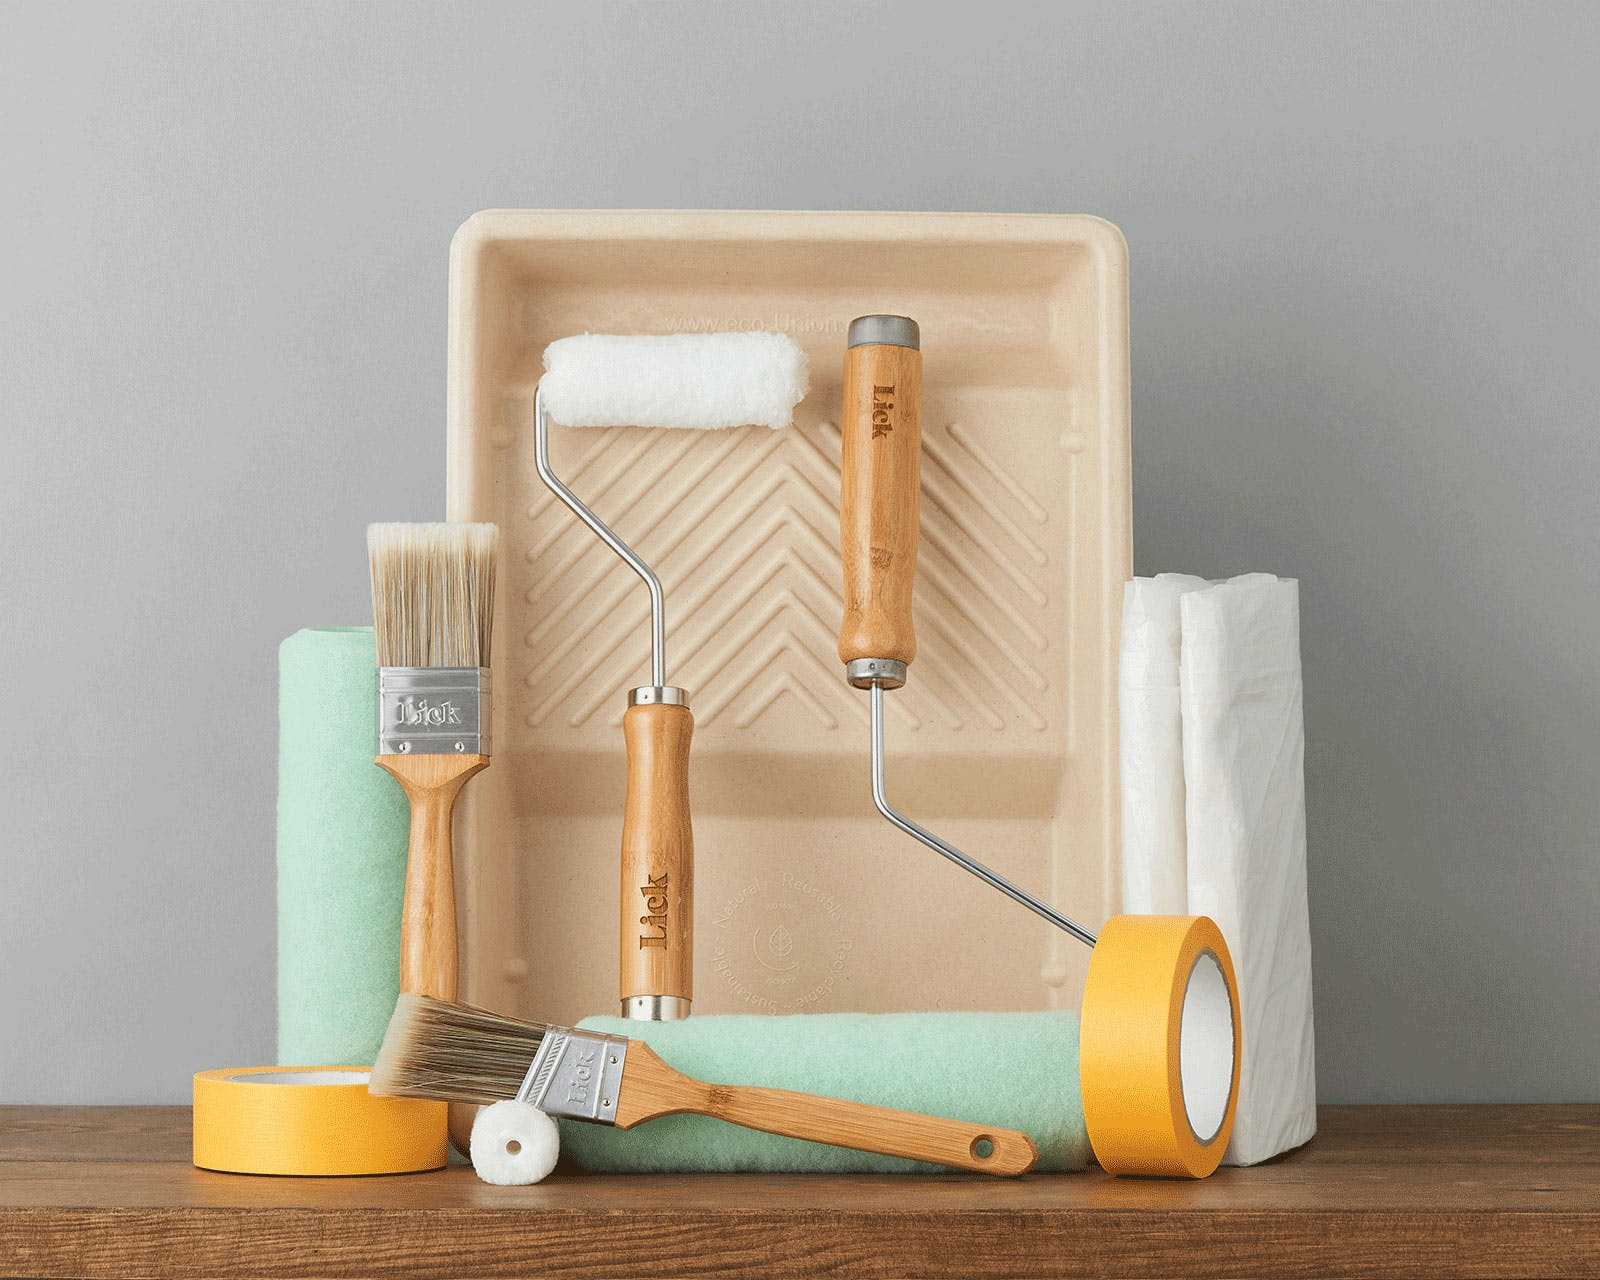 Lick eco-friendly, multi-room home decorating kit